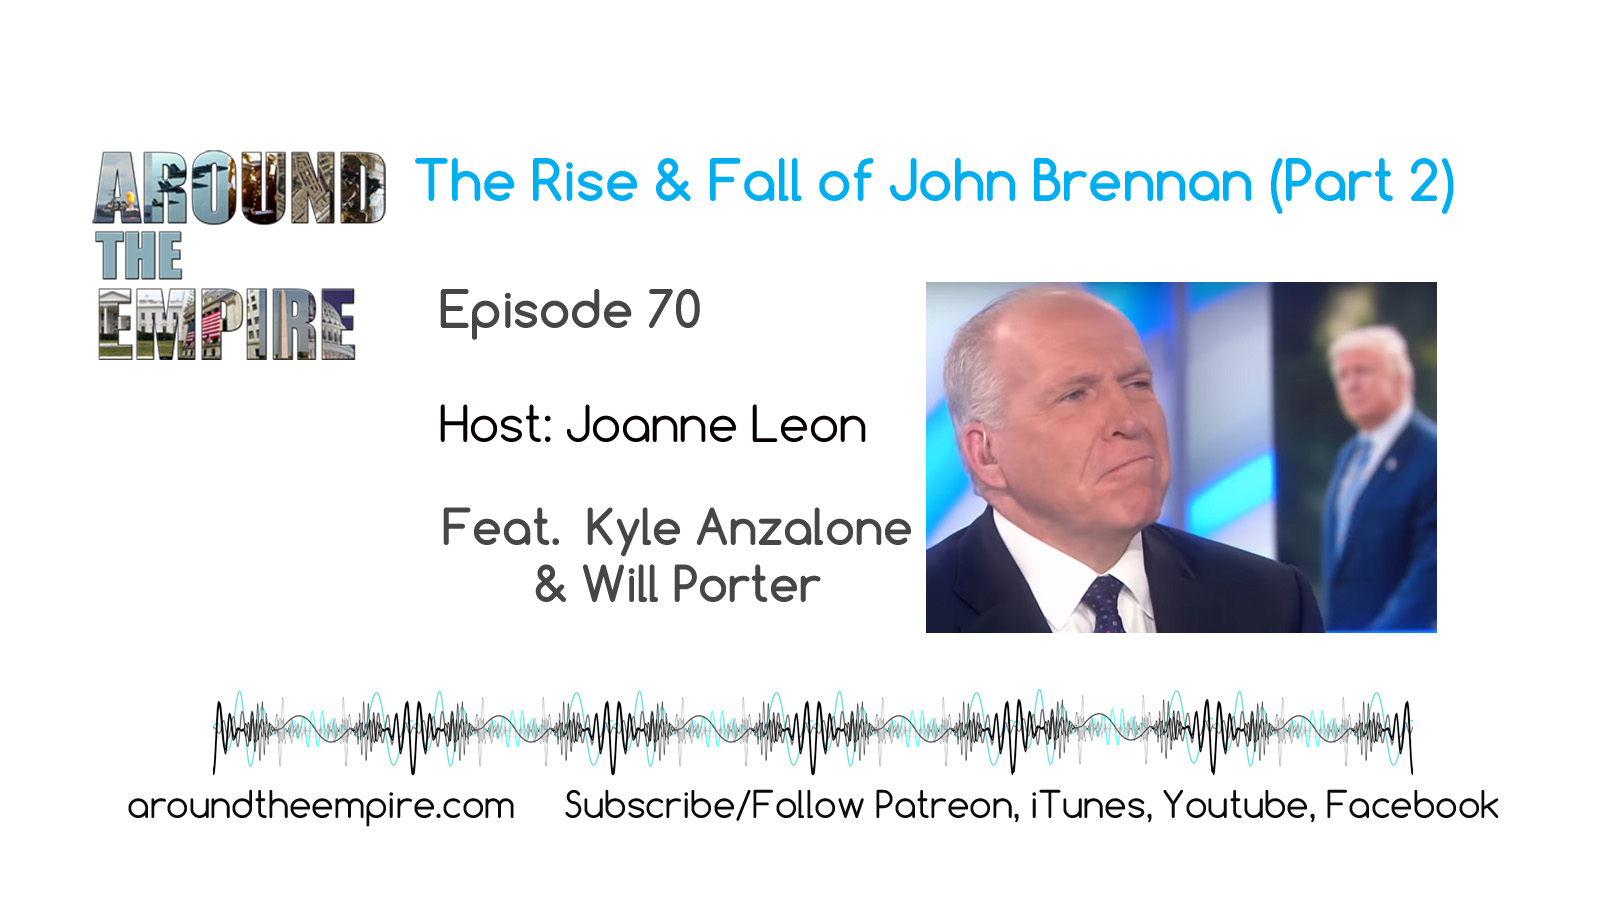 Ep 70 The Rise and Fall of John Brennan - Part 2